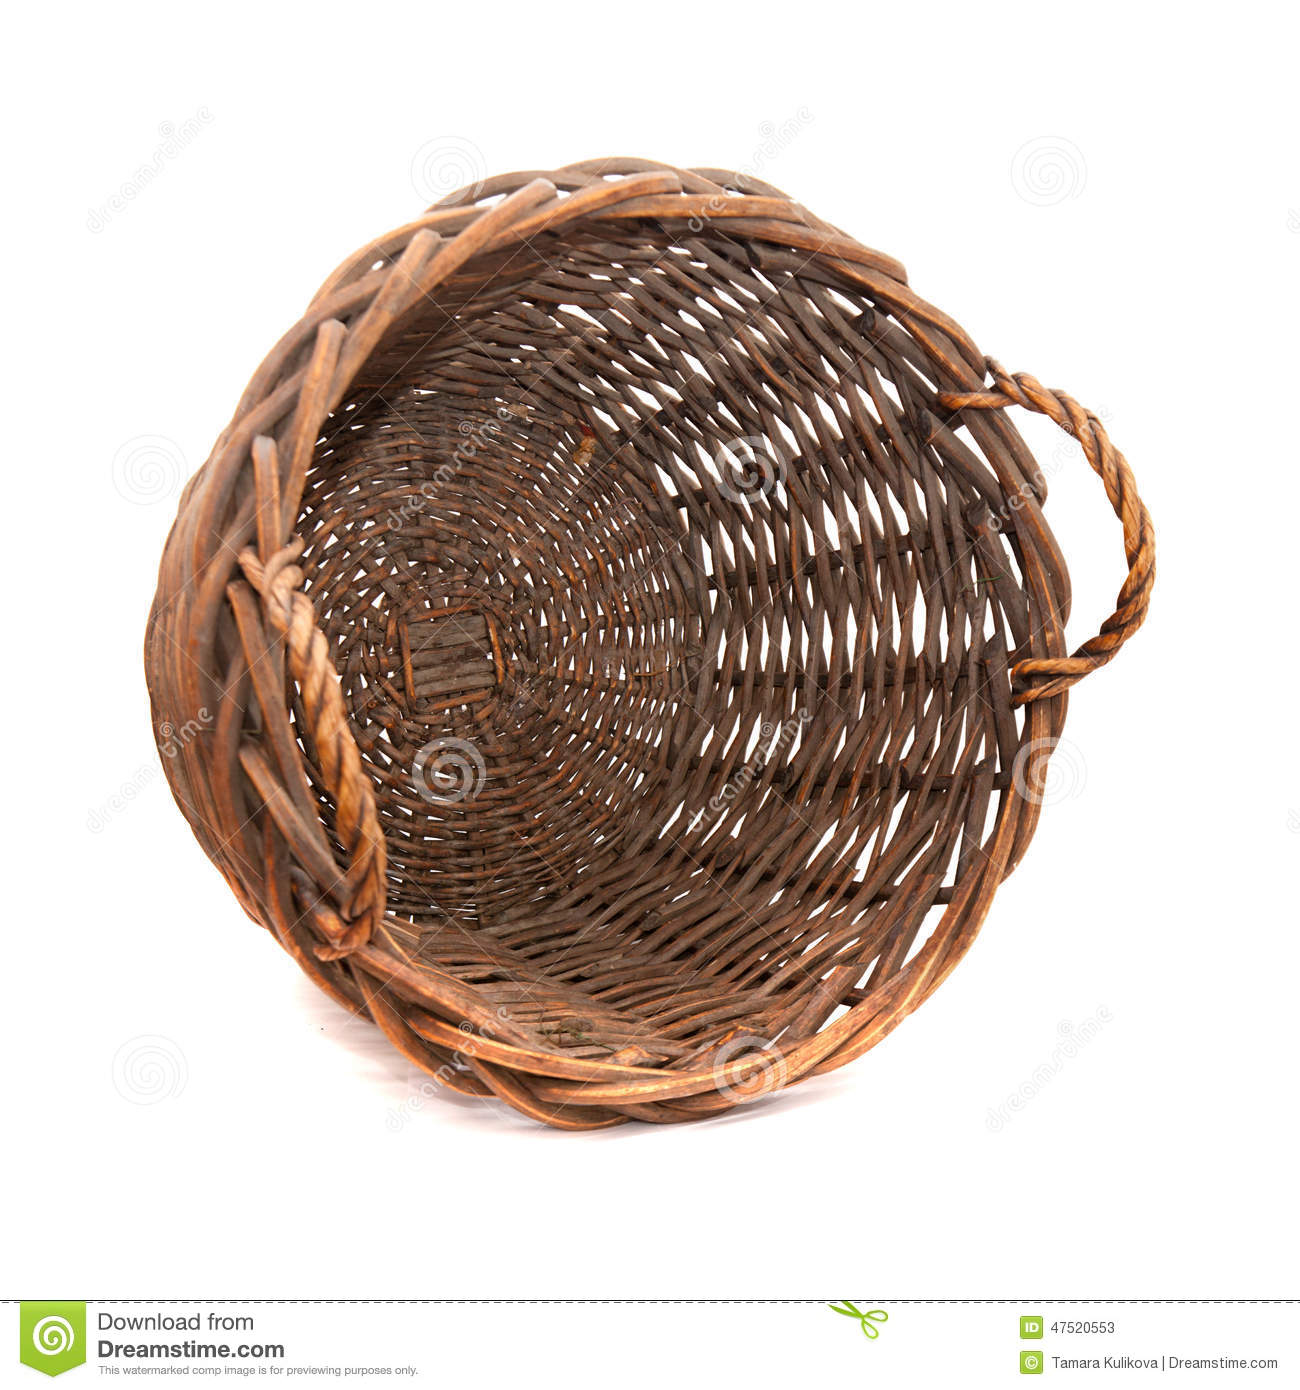 Grand panier vide photo stock image 47520553 for Prix d un conteneur vide